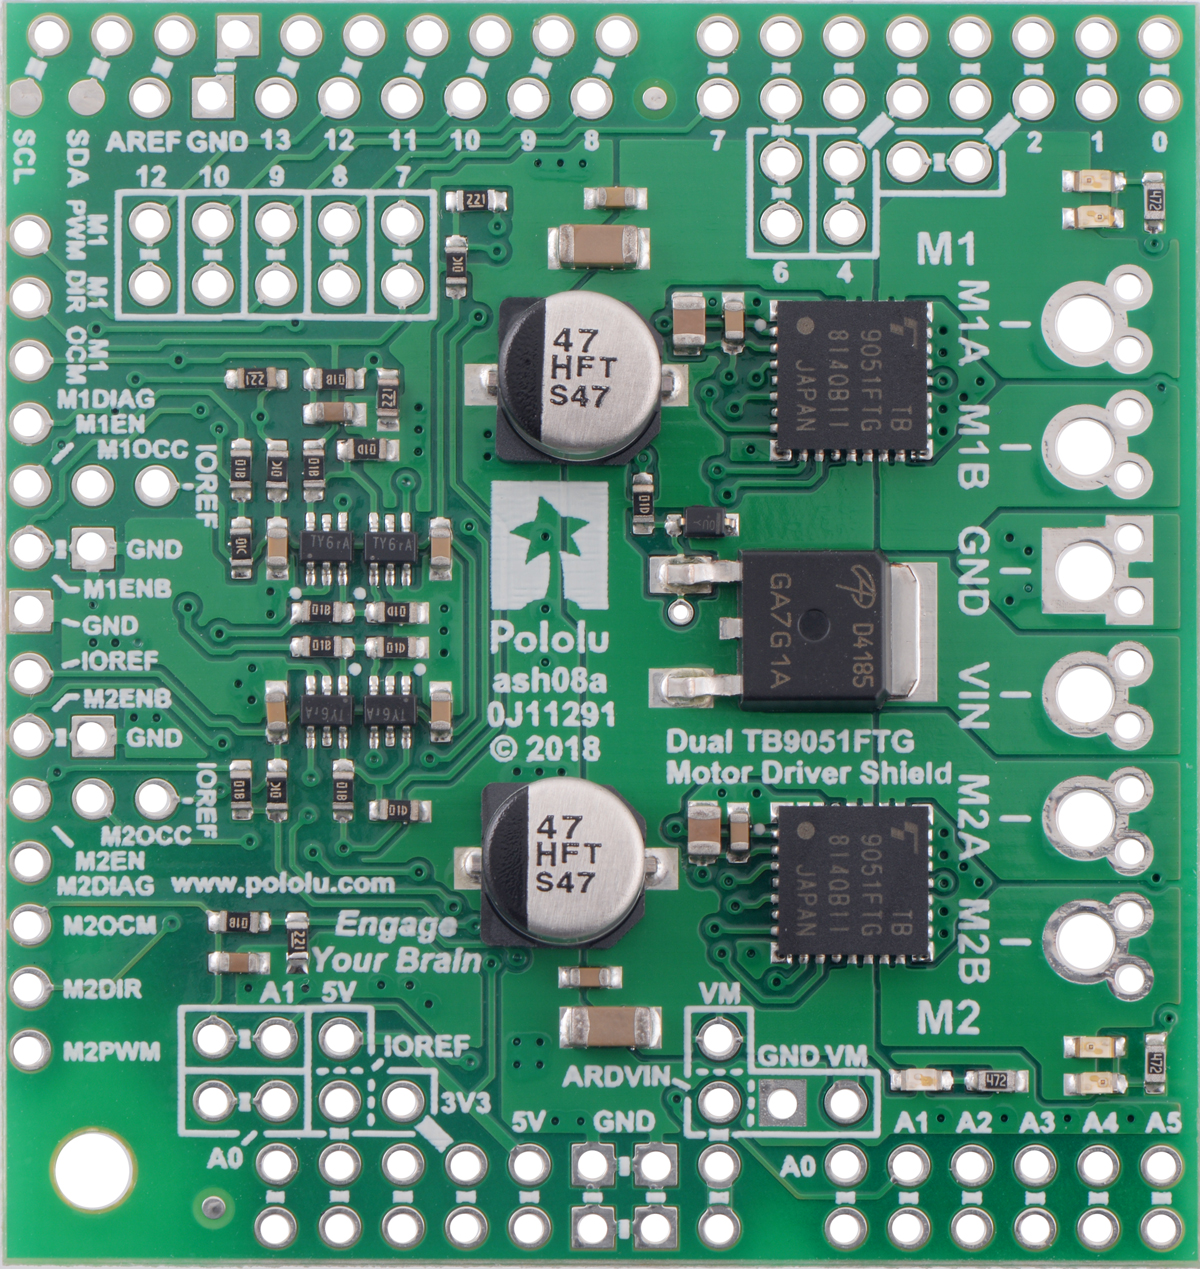 Pololu Dual Tb9051ftg Motor Driver Shield For Arduino How To Make Custom Shields A Microcontroller Board This Versatility Along With An Option Power The From Either Directly Or Through Added Regulator Sets Apart